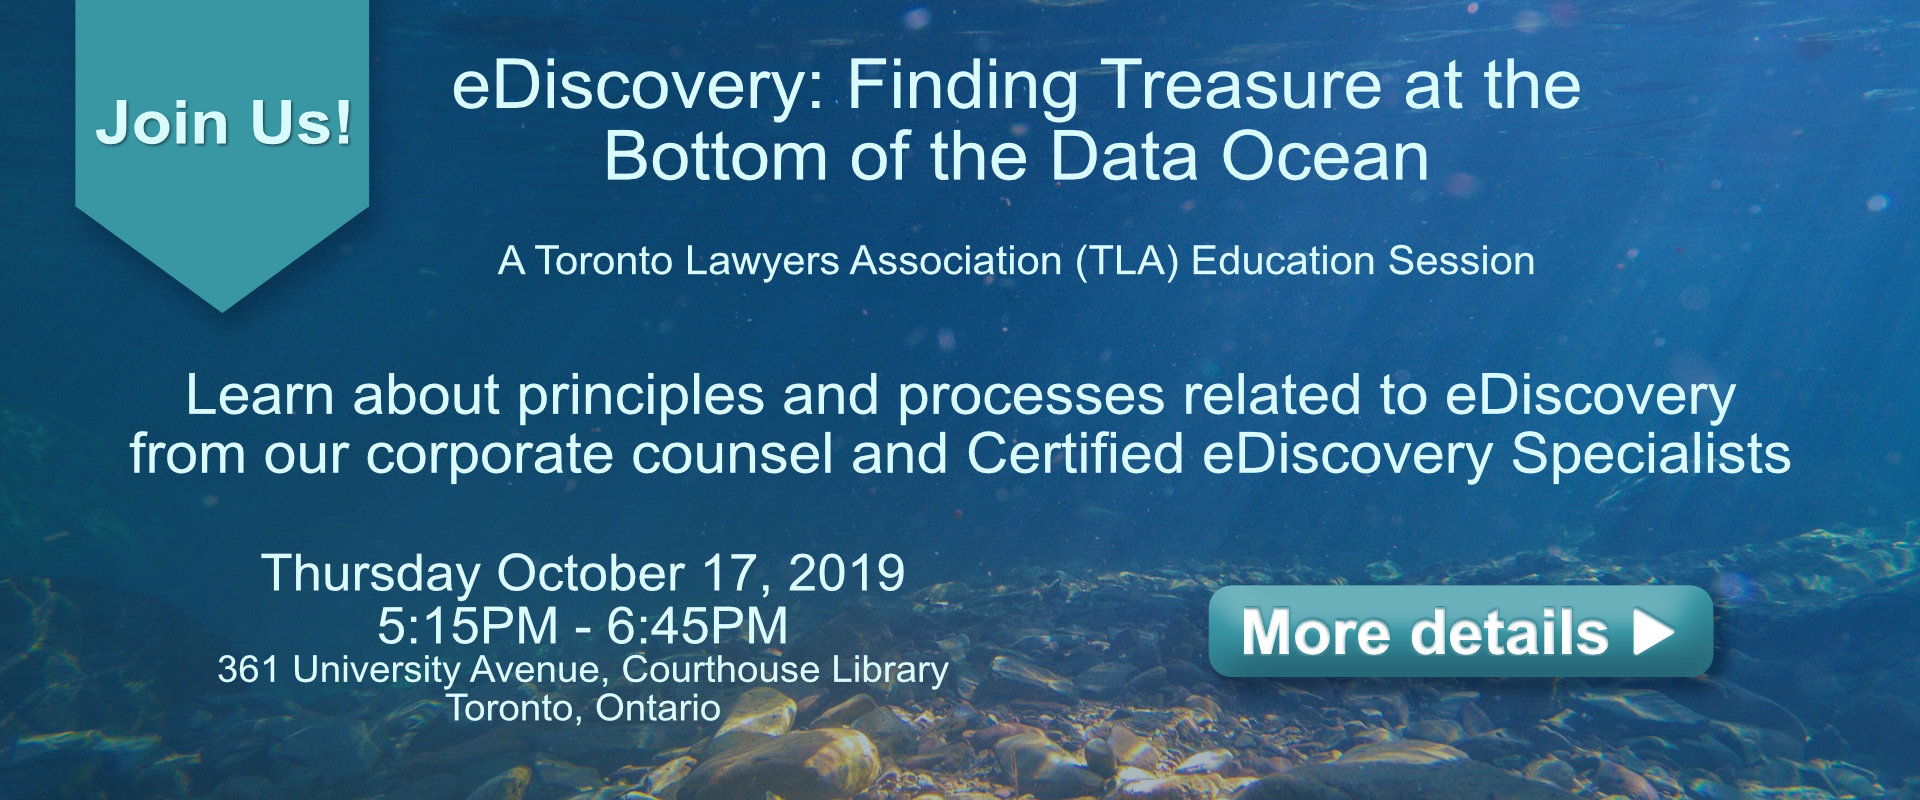 "Join us for ""eDiscovery: Finding Treasure at the Bottom of the Data Ocean"" - A Toronto Lawyers Association Education Session on October 17, 2019"